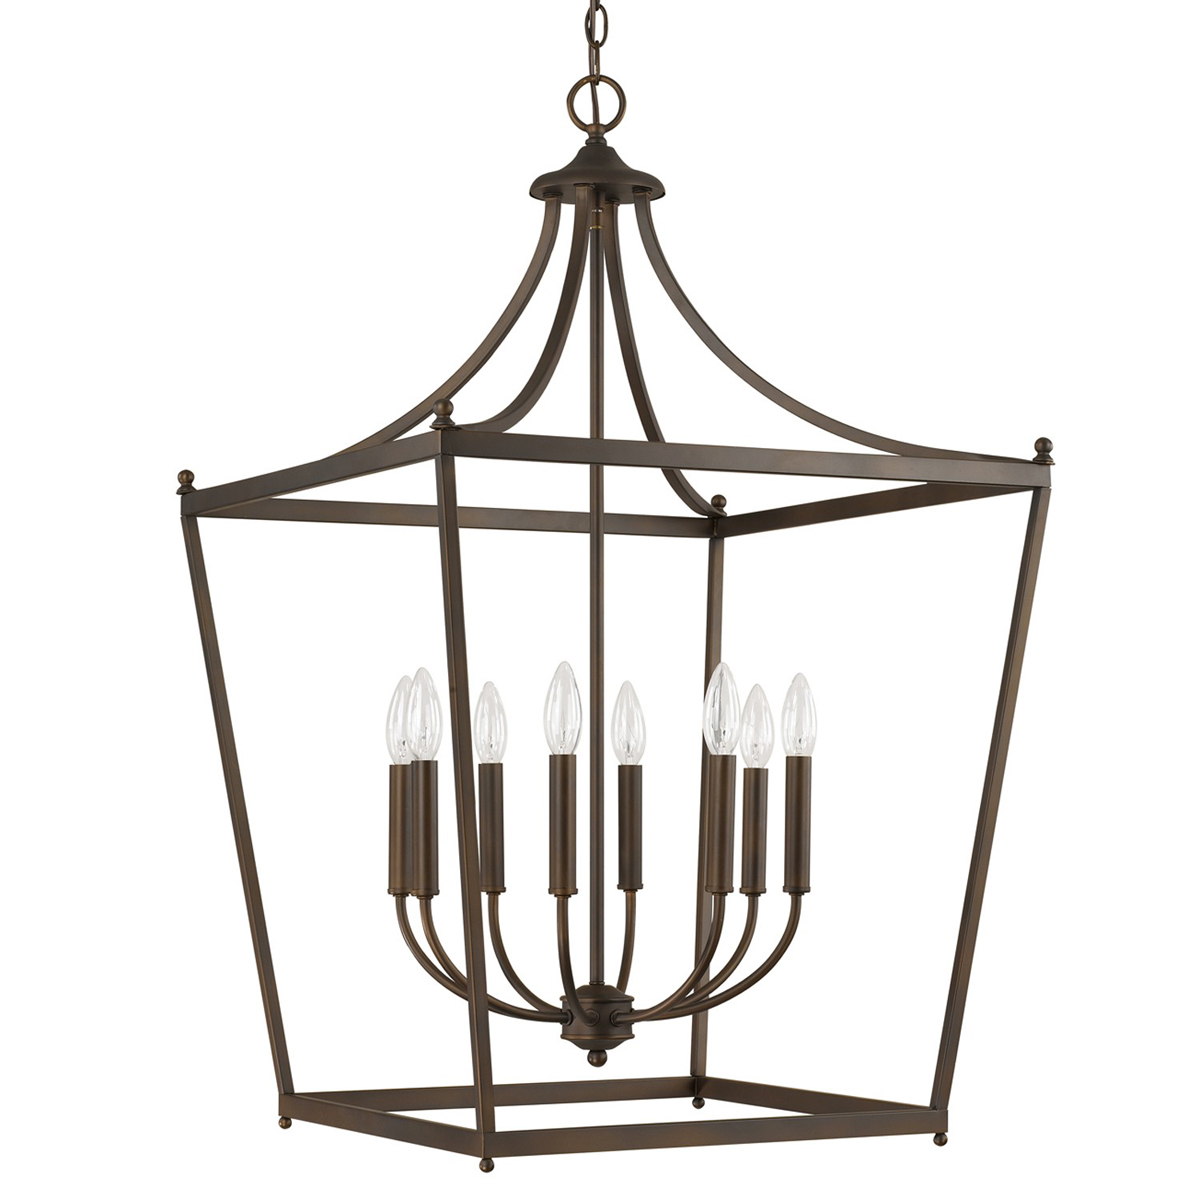 Foyer Lighting Fixtures : Capital lighting stanton light foyer fixture